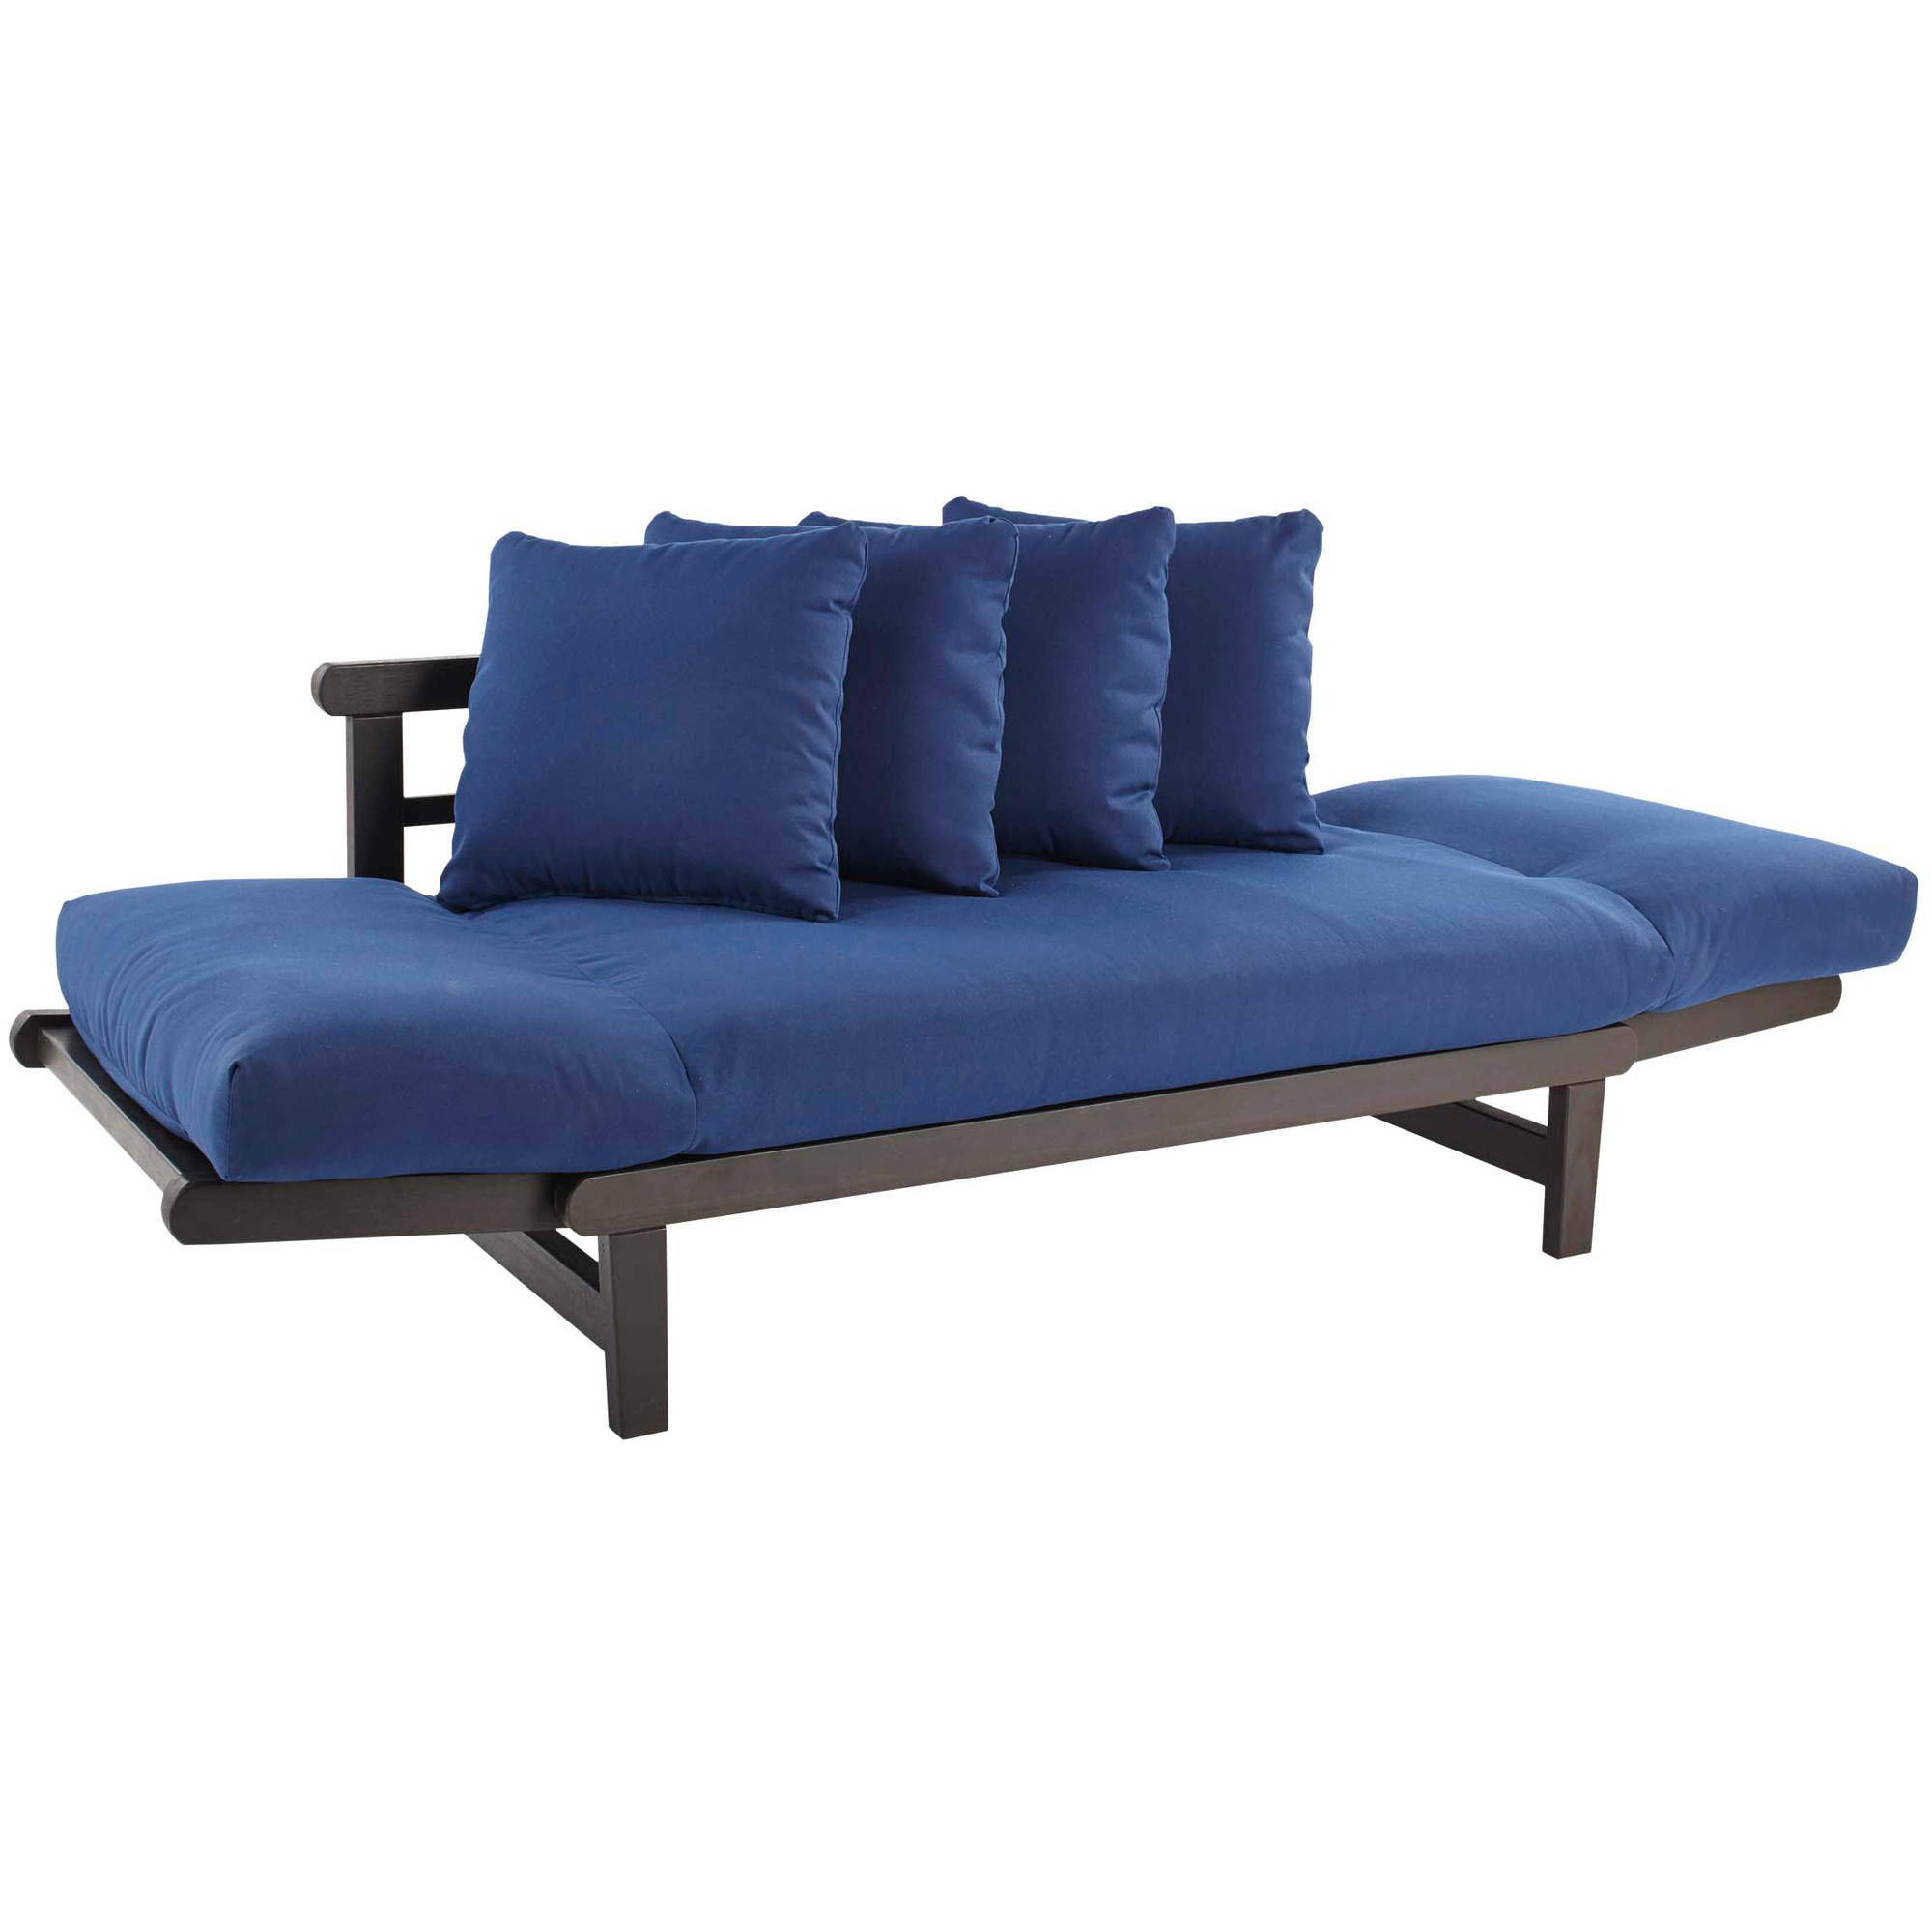 outdoor furniture sleeper sofa bar chair bed por rattan beds lots from thesofa